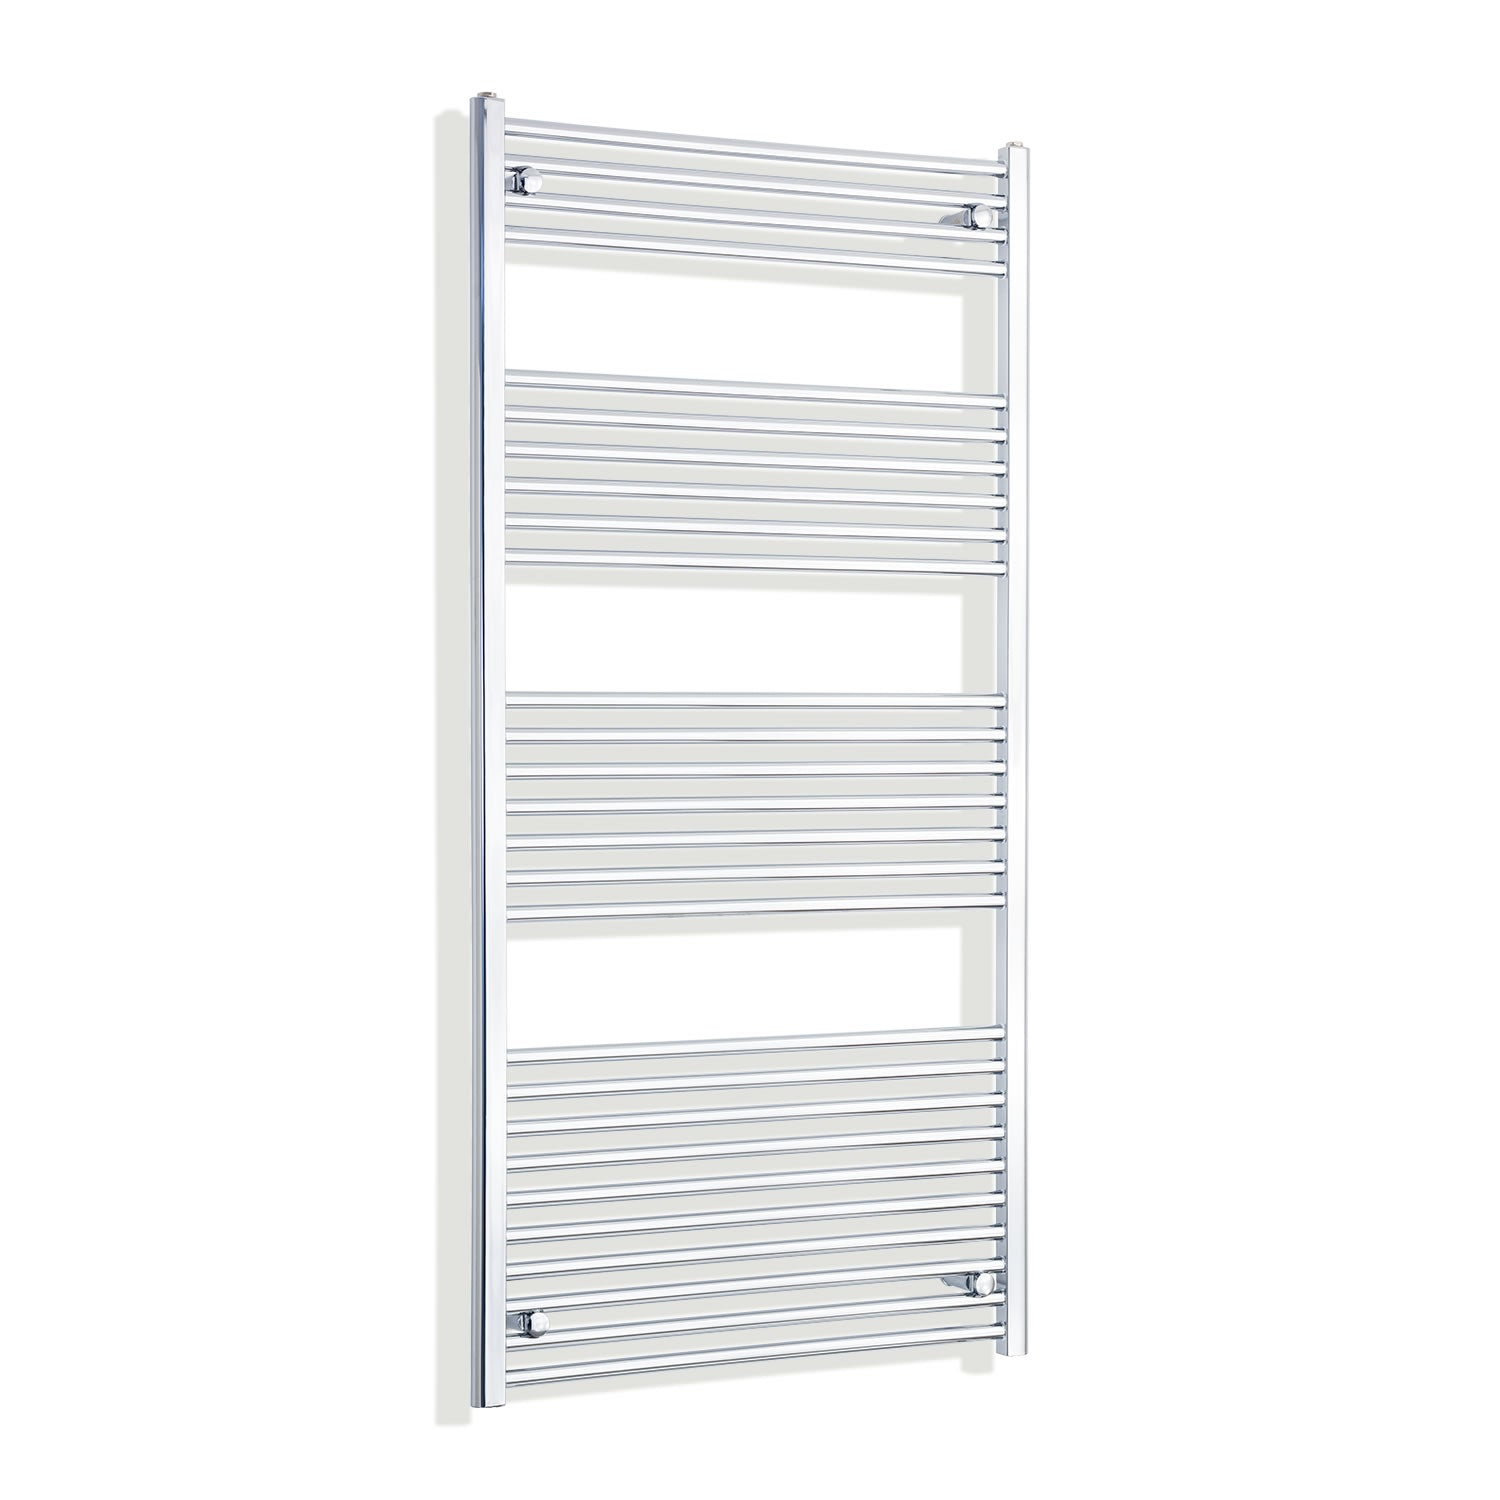 750mm Wide 1600mm High Curved Chrome Heated Towel Rail Radiator HTR,Towel Rail Only